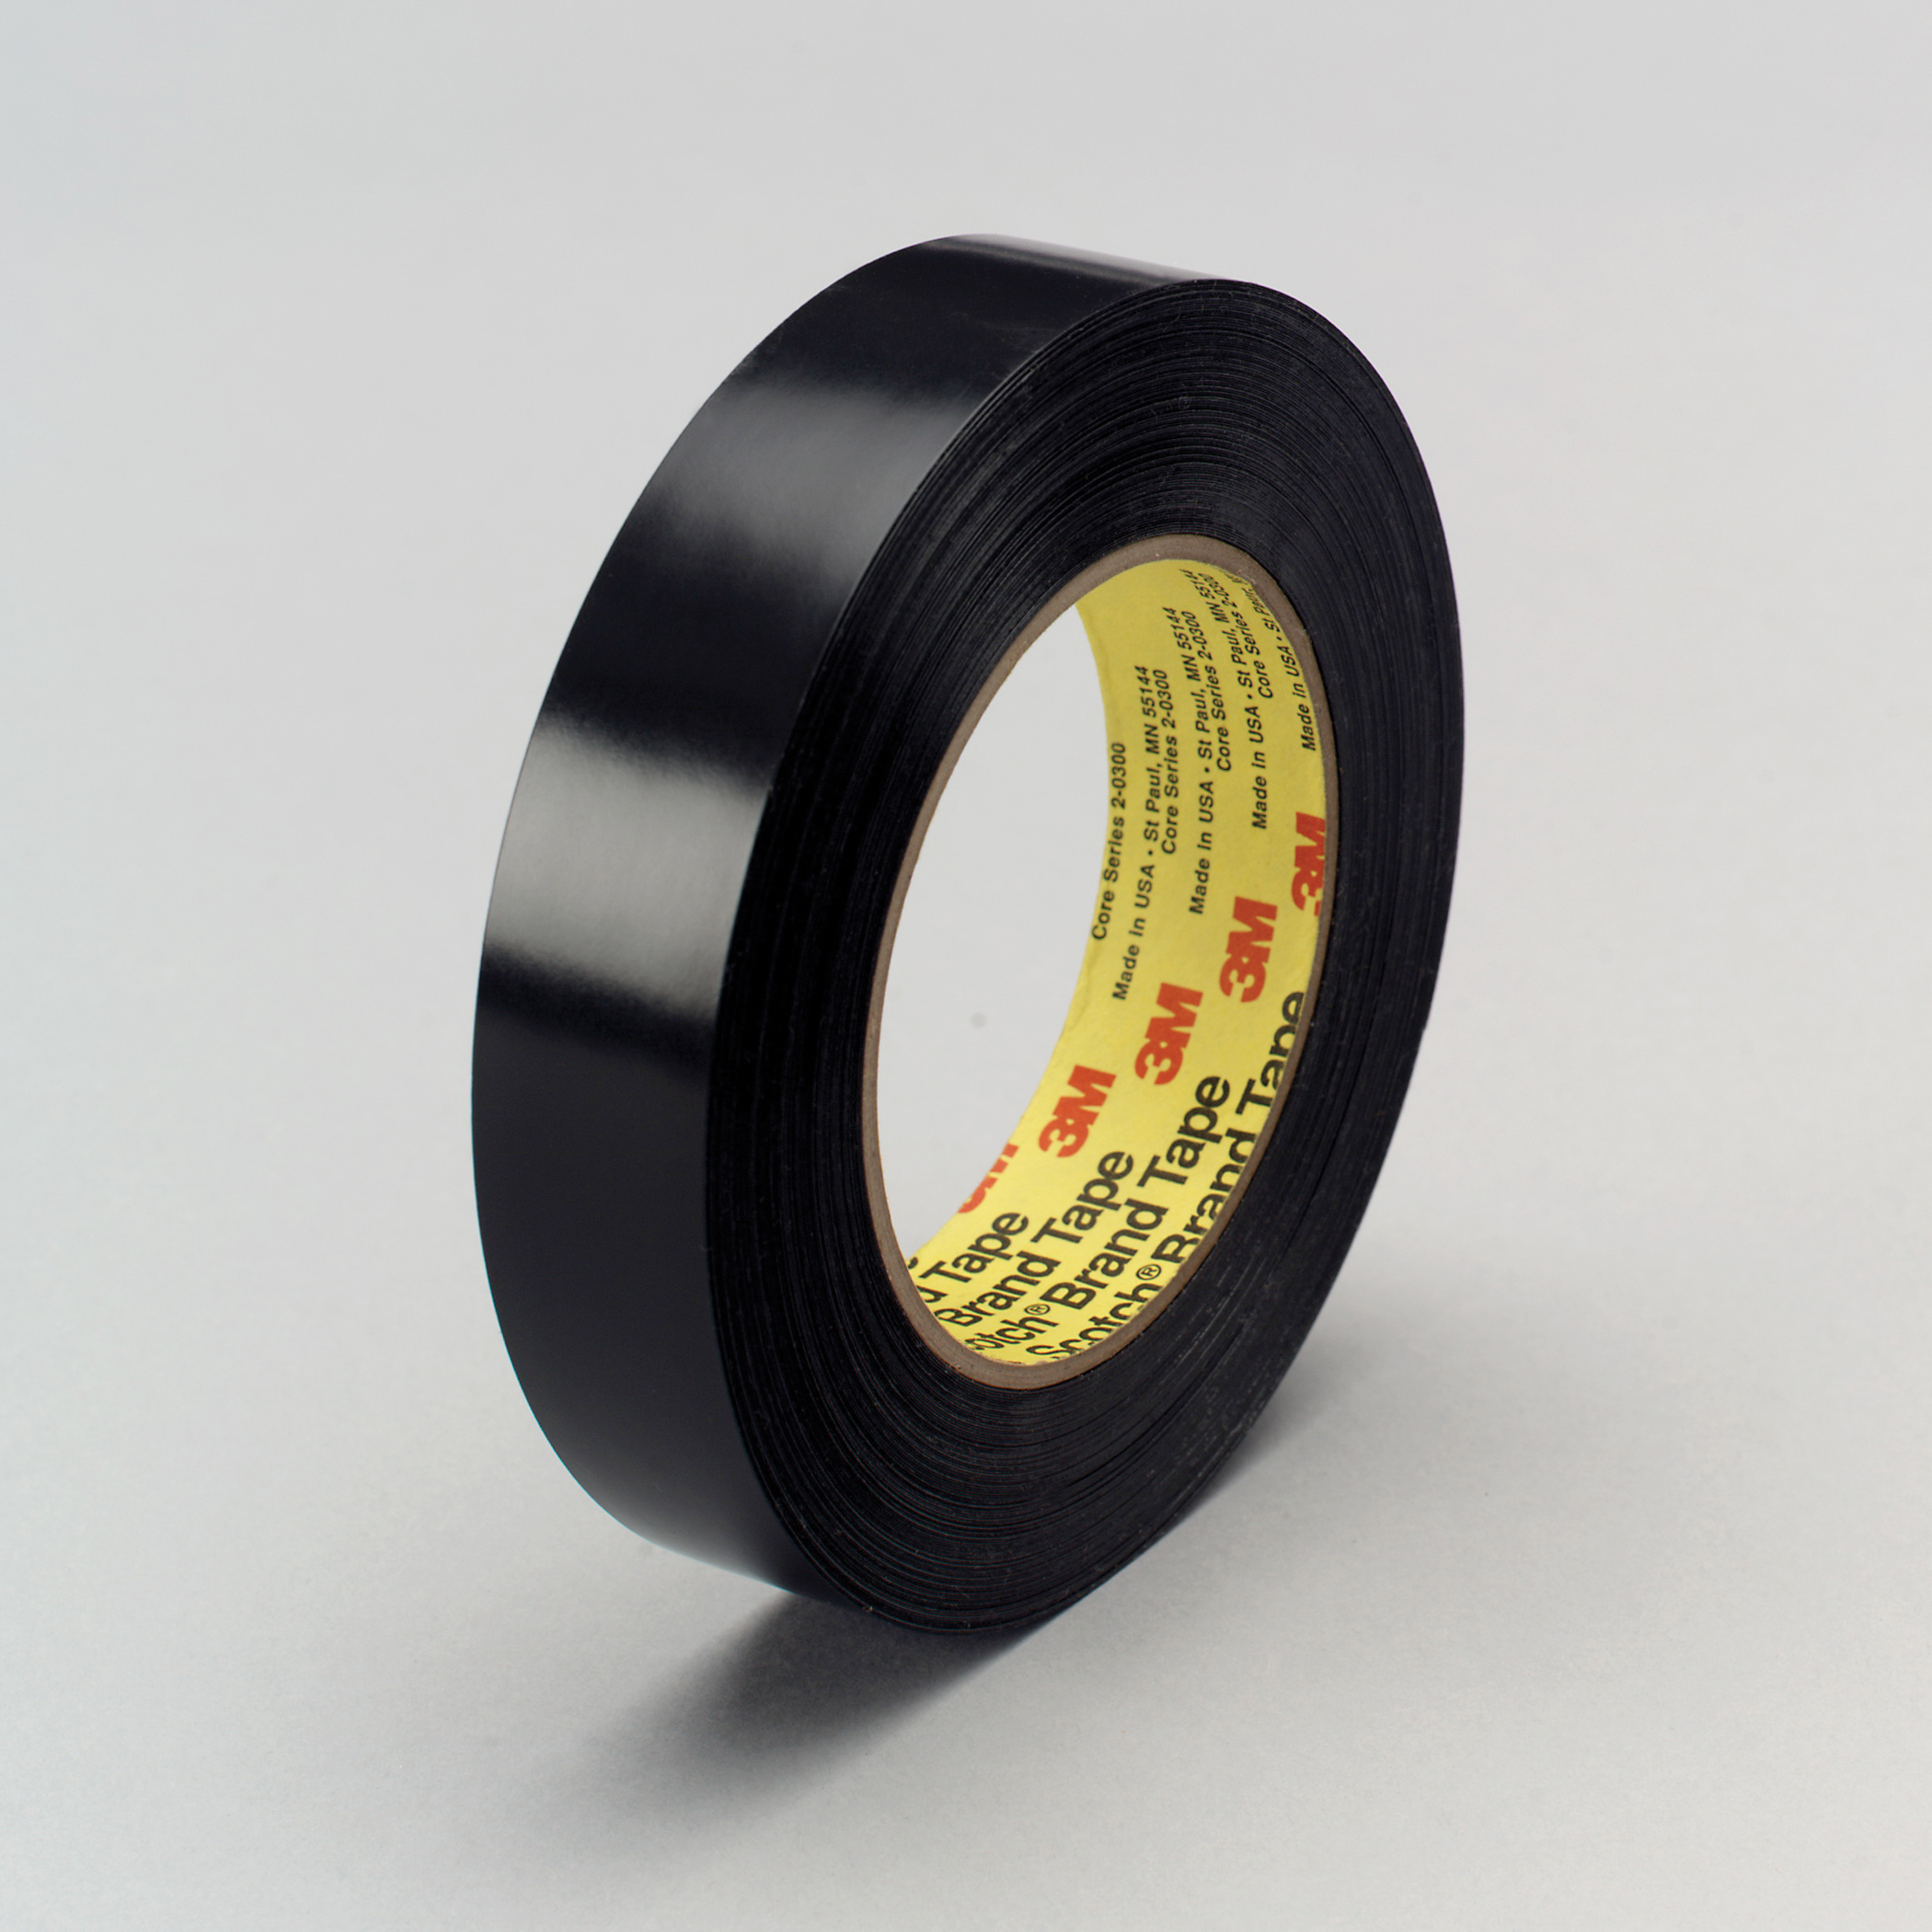 3M™ 021200-03174 Preservation Sealing Tape, 36 yd L x 1 in W, 9.5 mil THK, Rubber Adhesive, Polyethylene Backing, Black